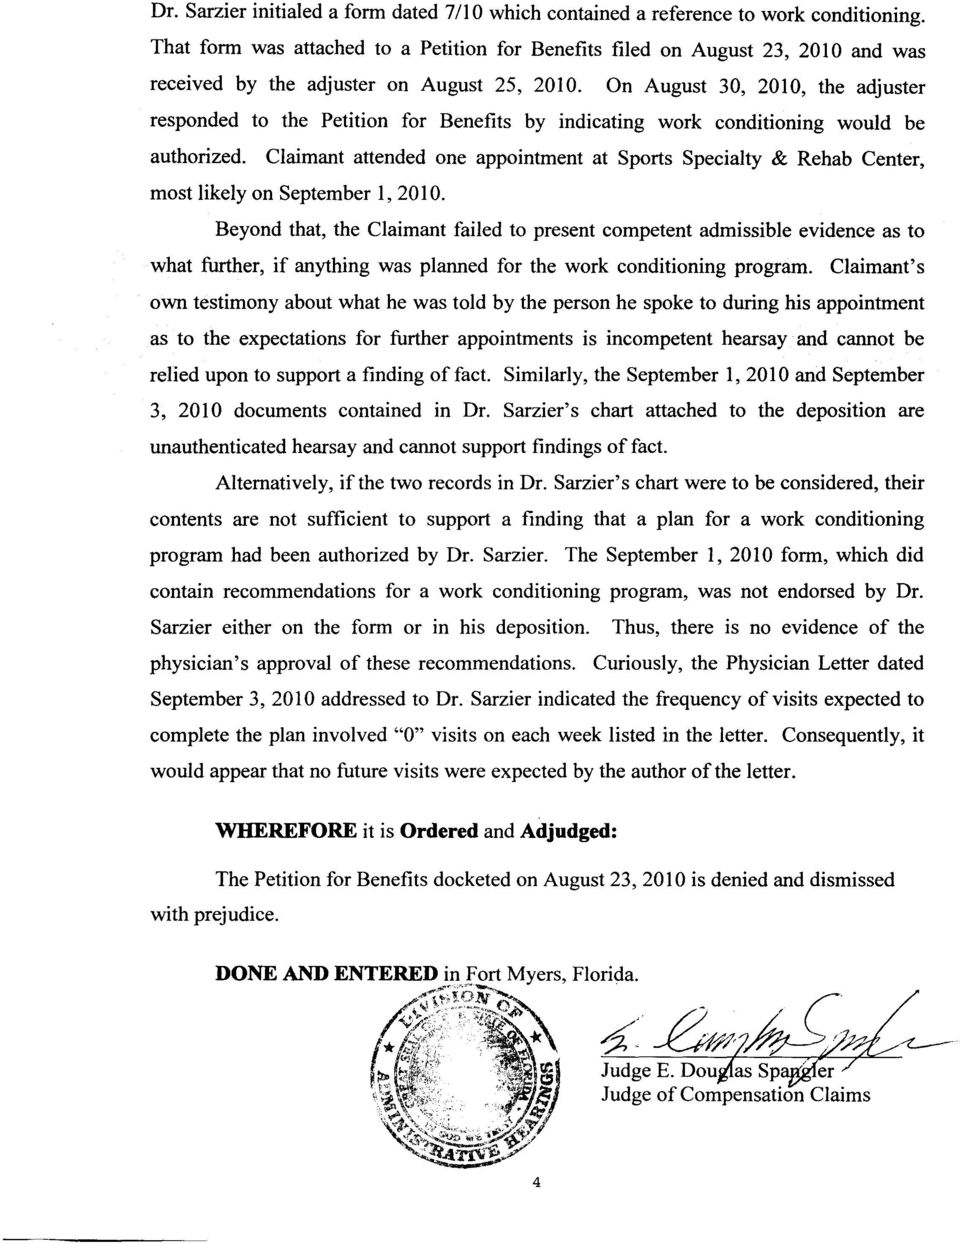 On August 30, 2010, the adjuster responded to the Petition for Benefits by indicating work conditioning would be authorized.